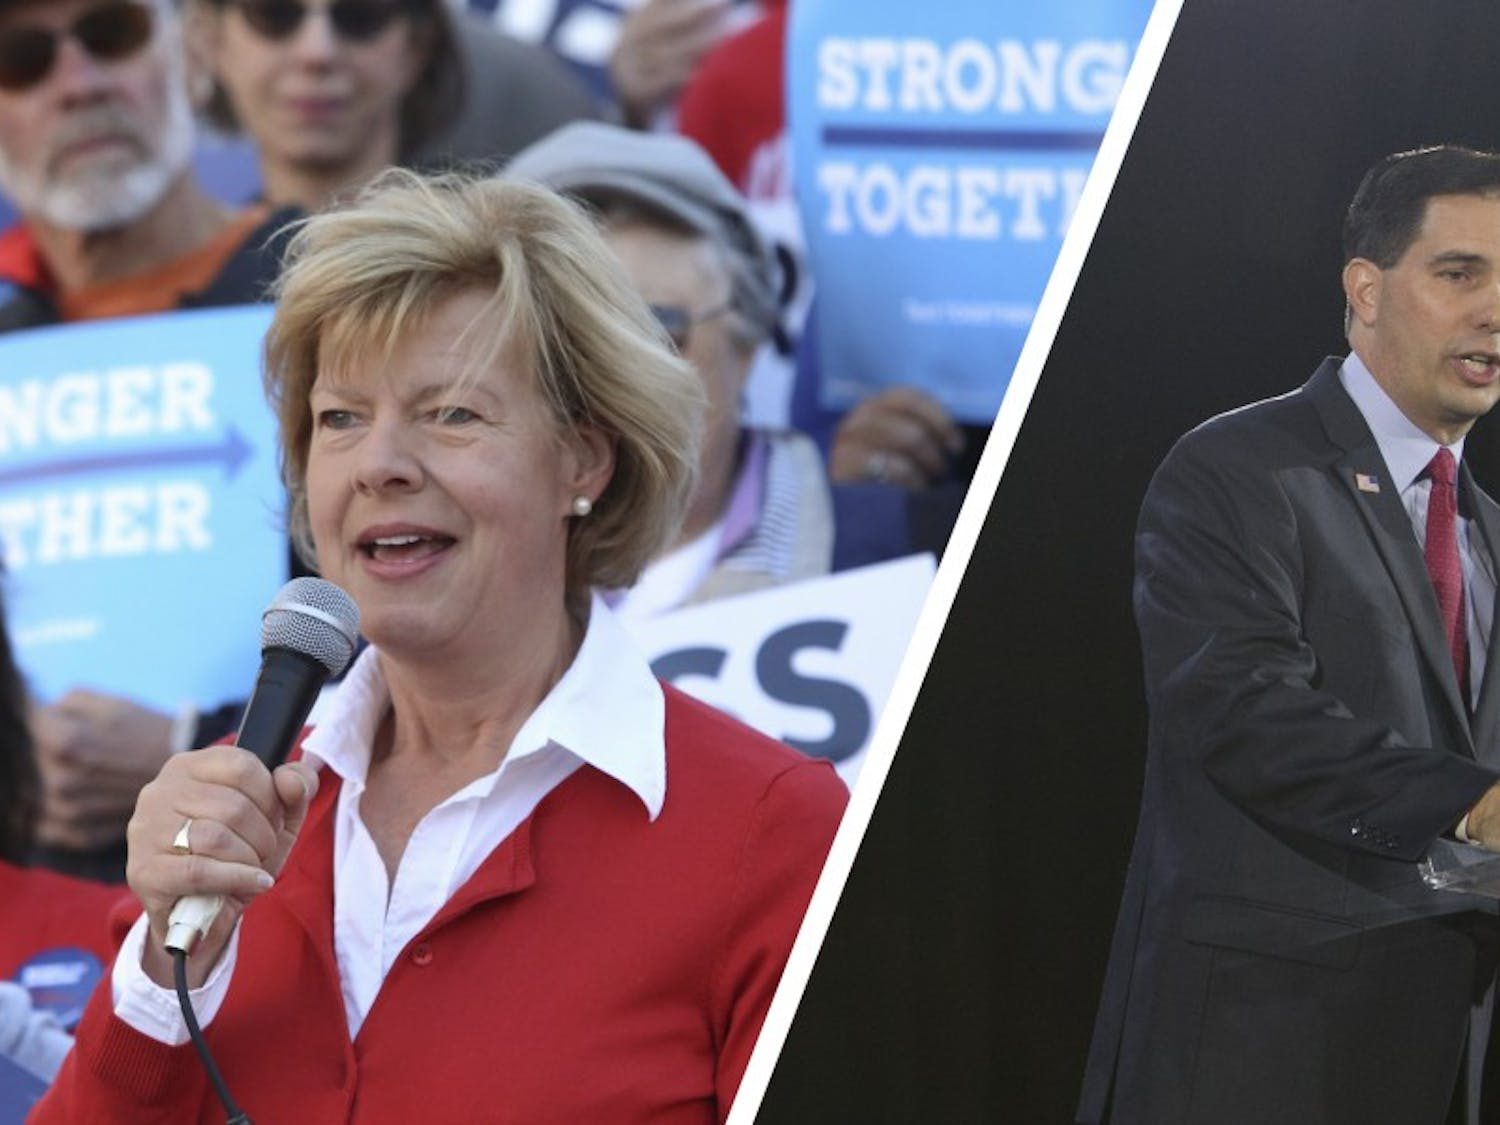 Gov. Scott Walker and Democratic challenger Tony Evers are statistically tied in Marquette's newest gubernatorial poll, while U.S. Sen. Tammy Baldwin, D-Wis., maintains a hefty lead on Republican Leah Vukmir.